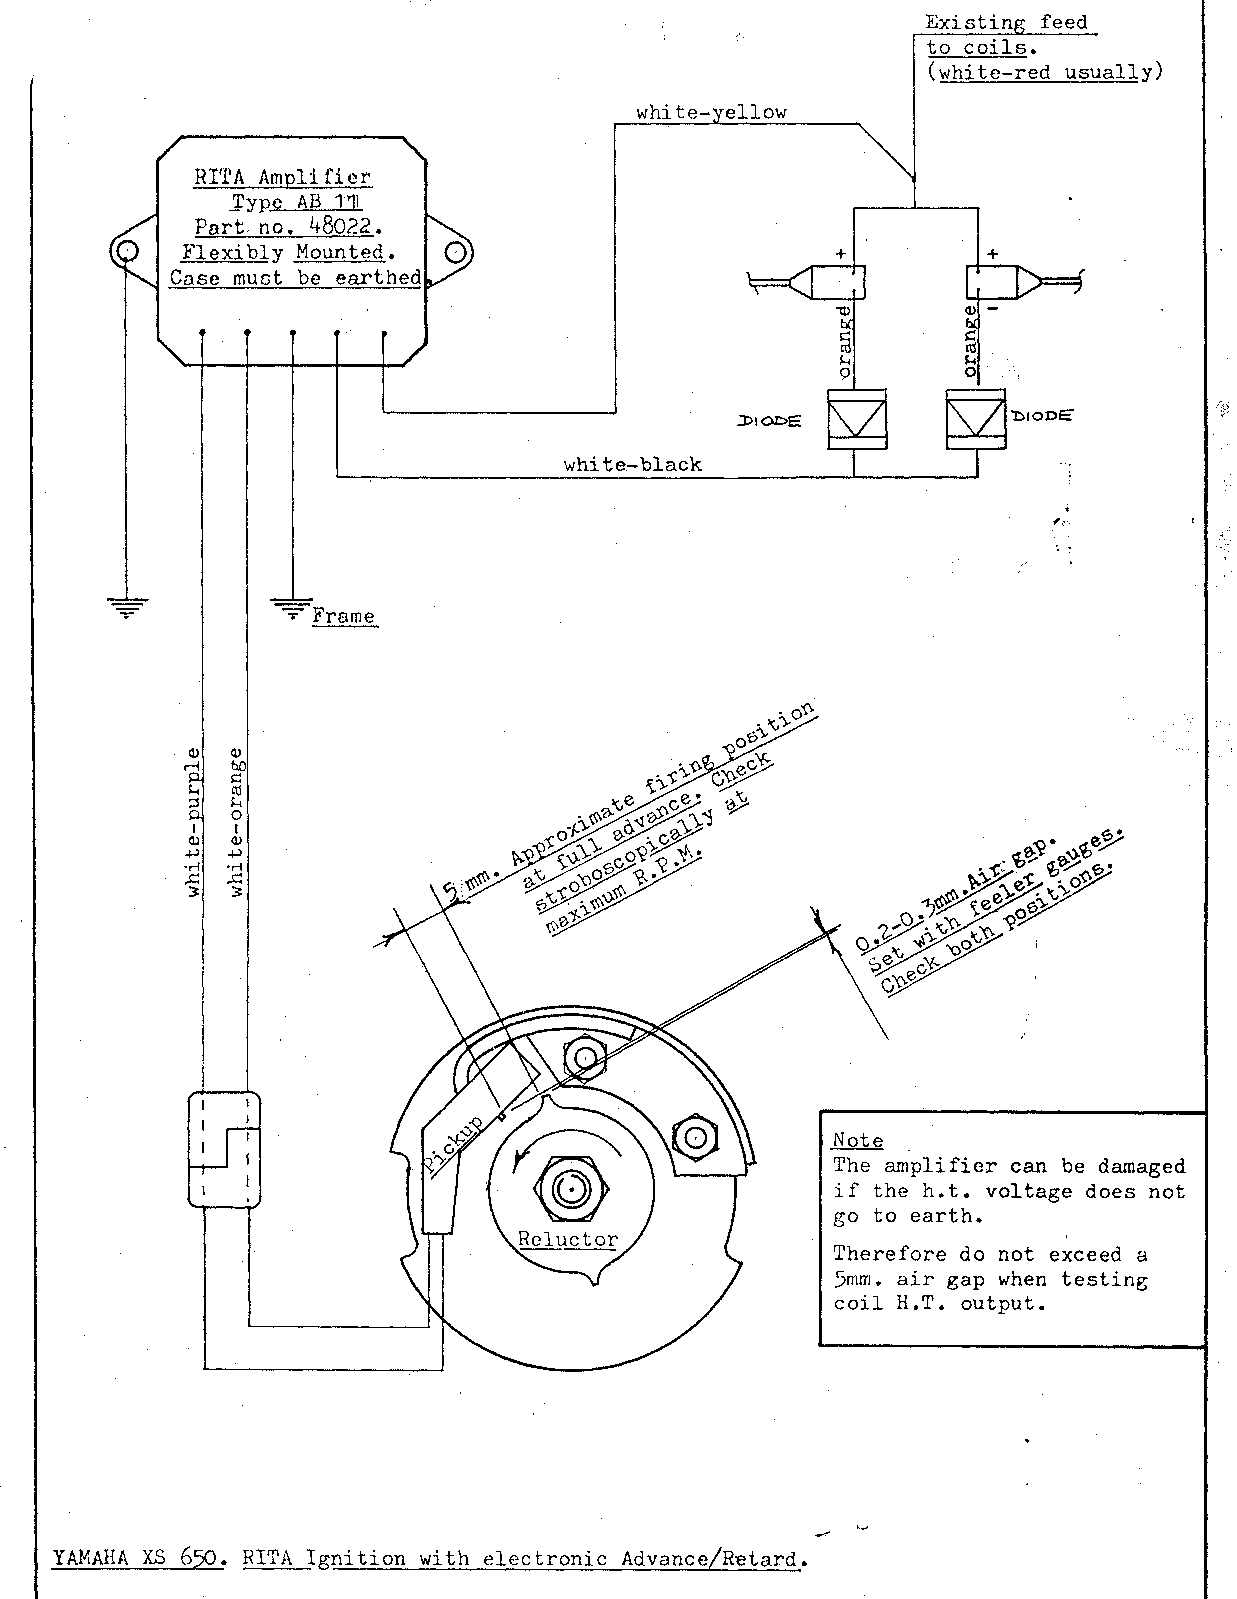 euro spares electronic components diagram for installing the lr143 rita ignition moto guzzi targa ab11 amplifier